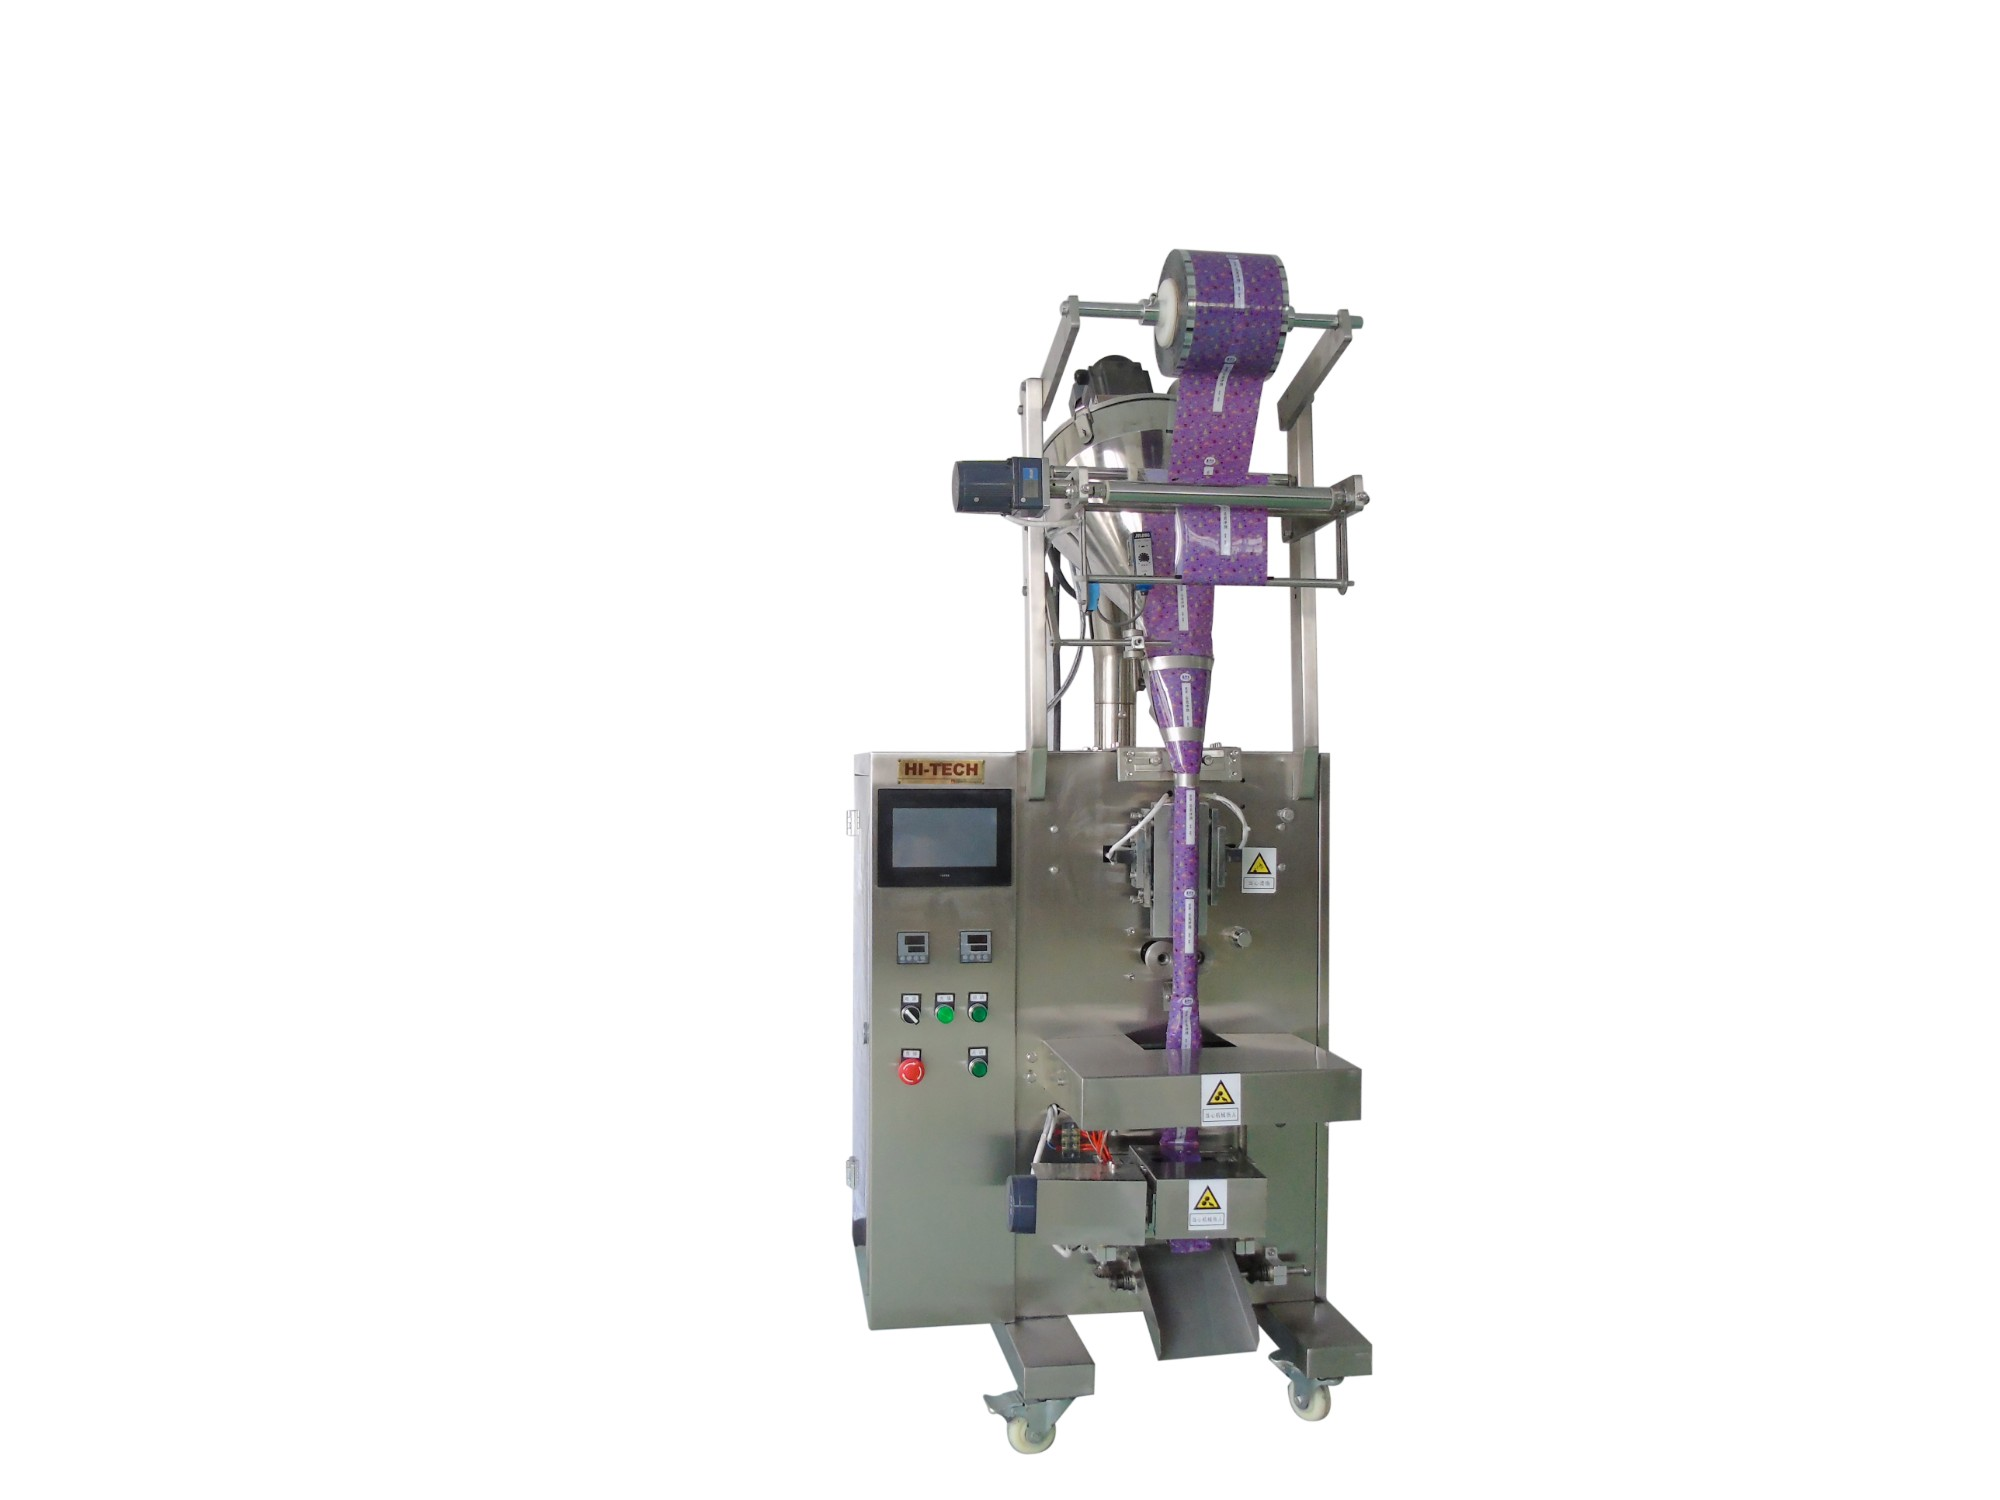 Stick Powder Packing Machine With Screw Manufacturers, Stick Powder Packing Machine With Screw Factory, Supply Stick Powder Packing Machine With Screw